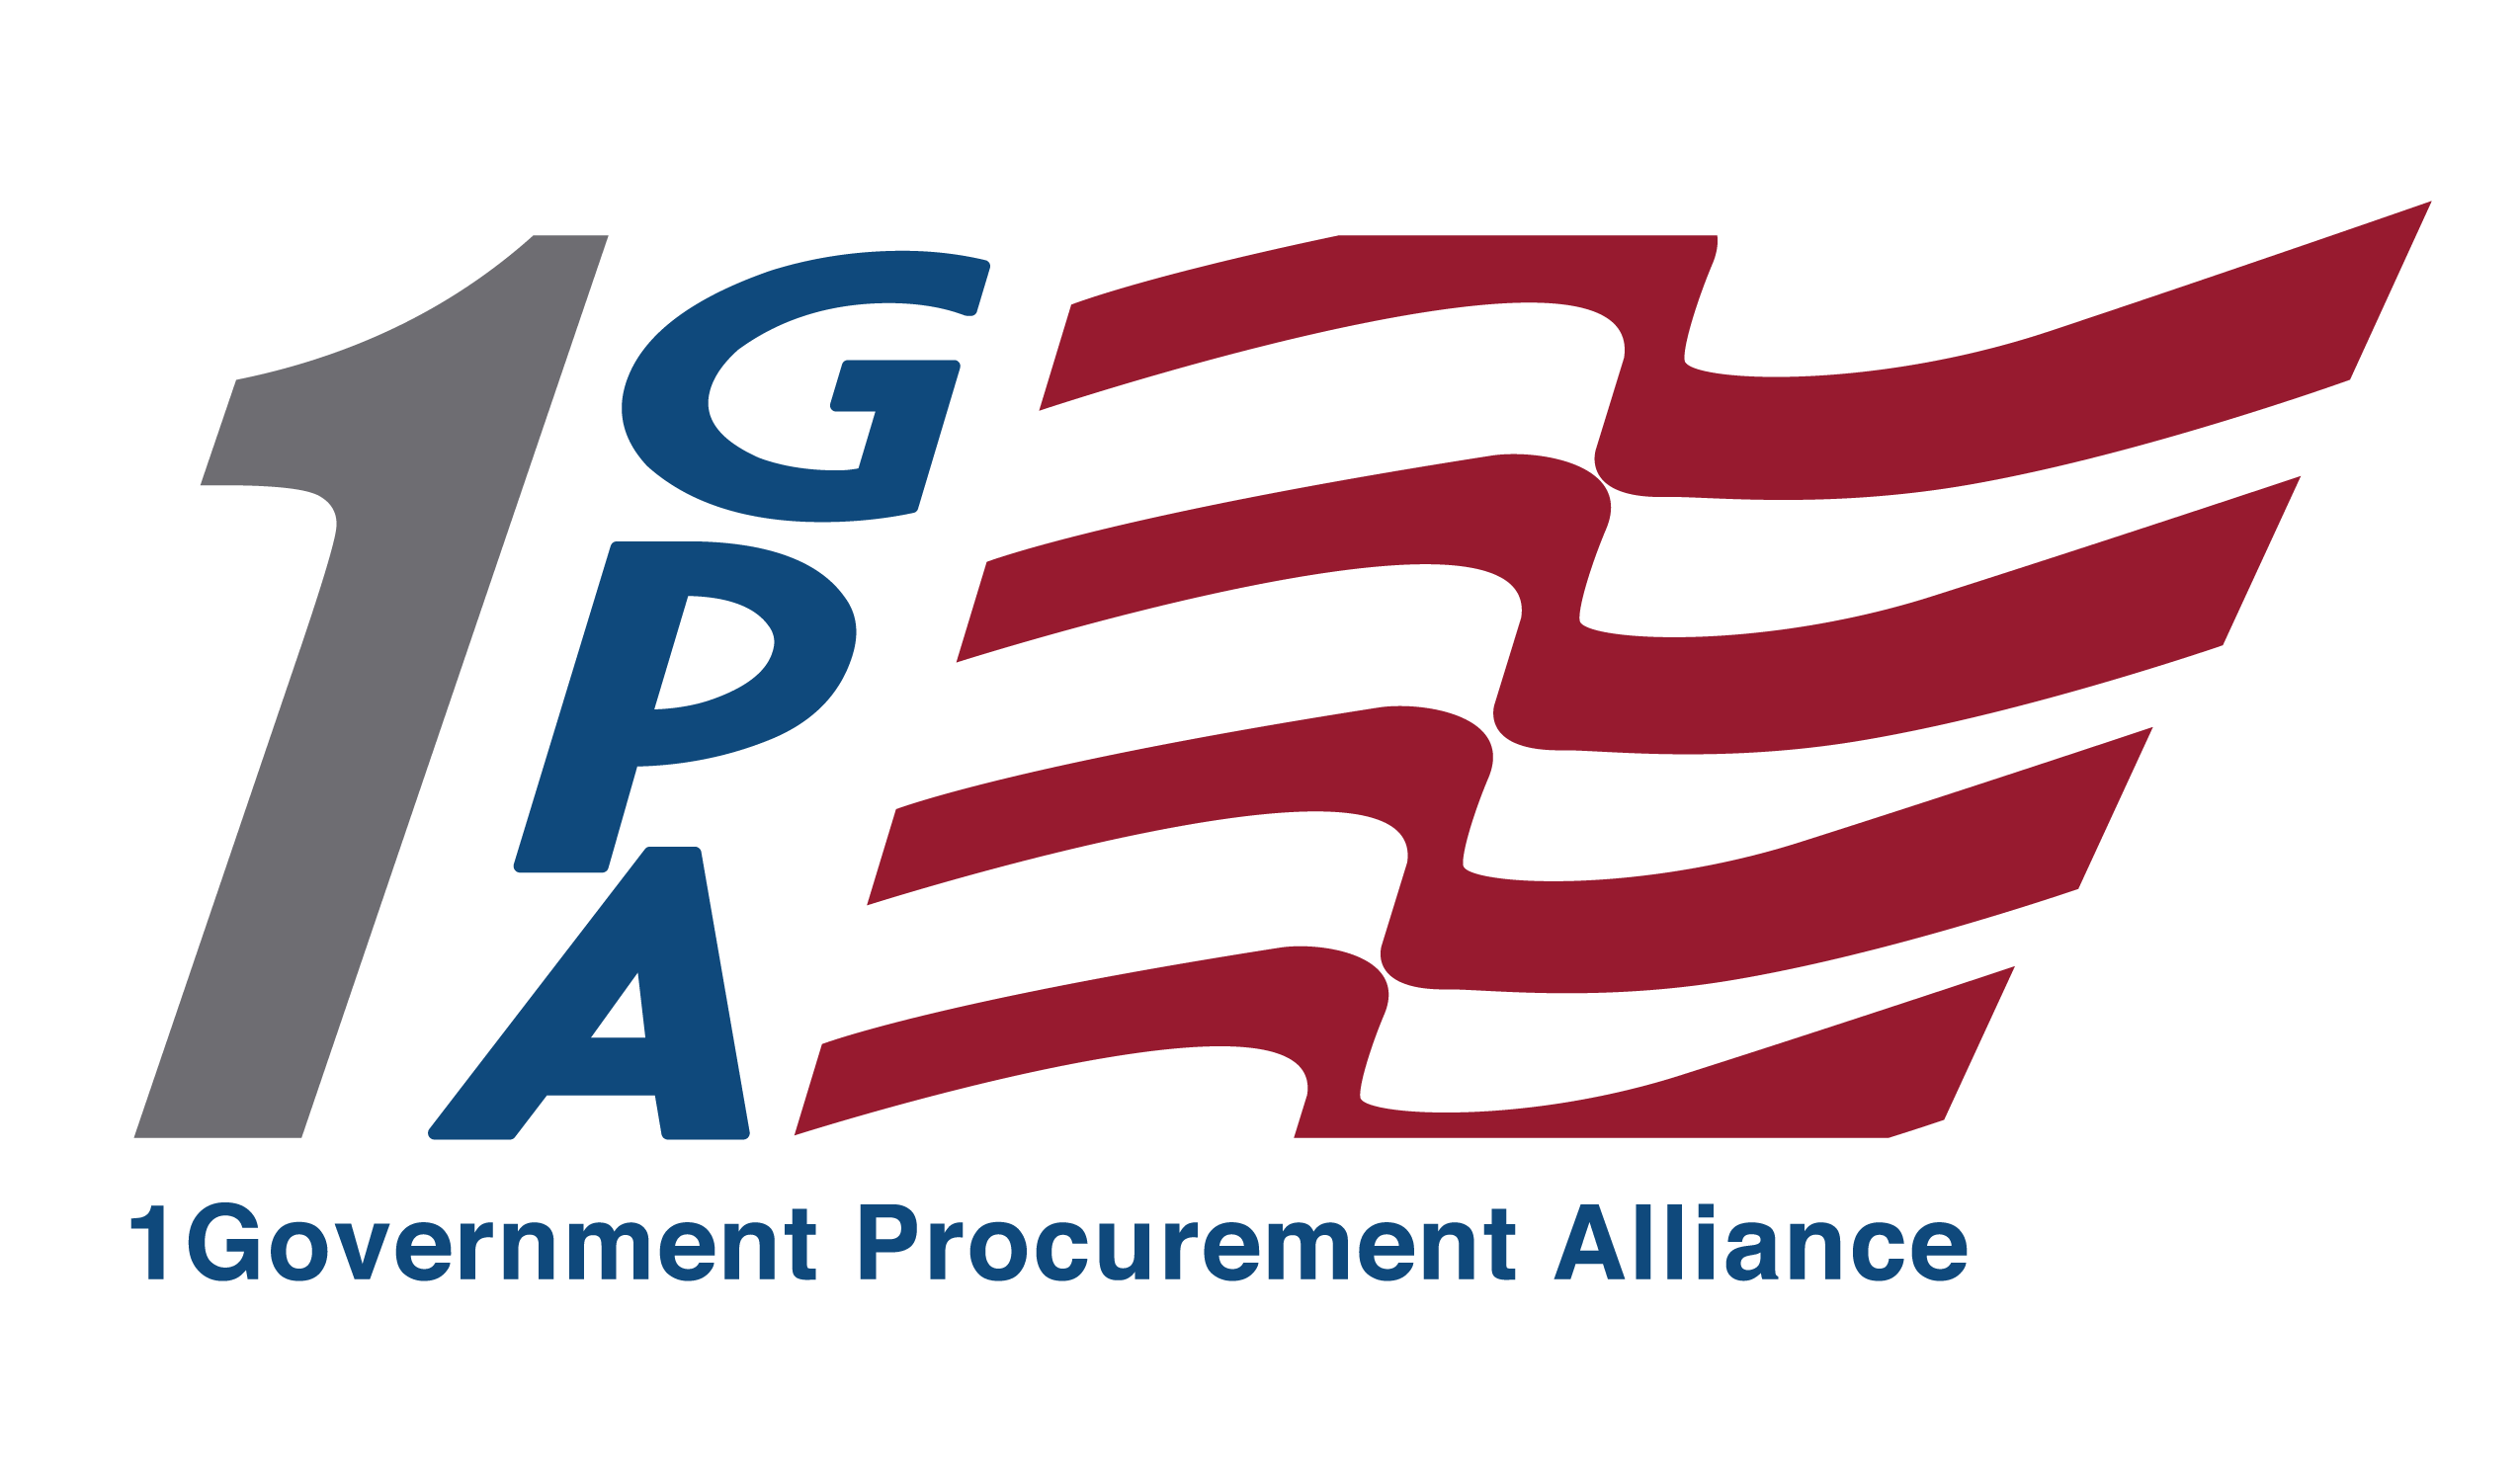 1gpa 1 government procurement alliance